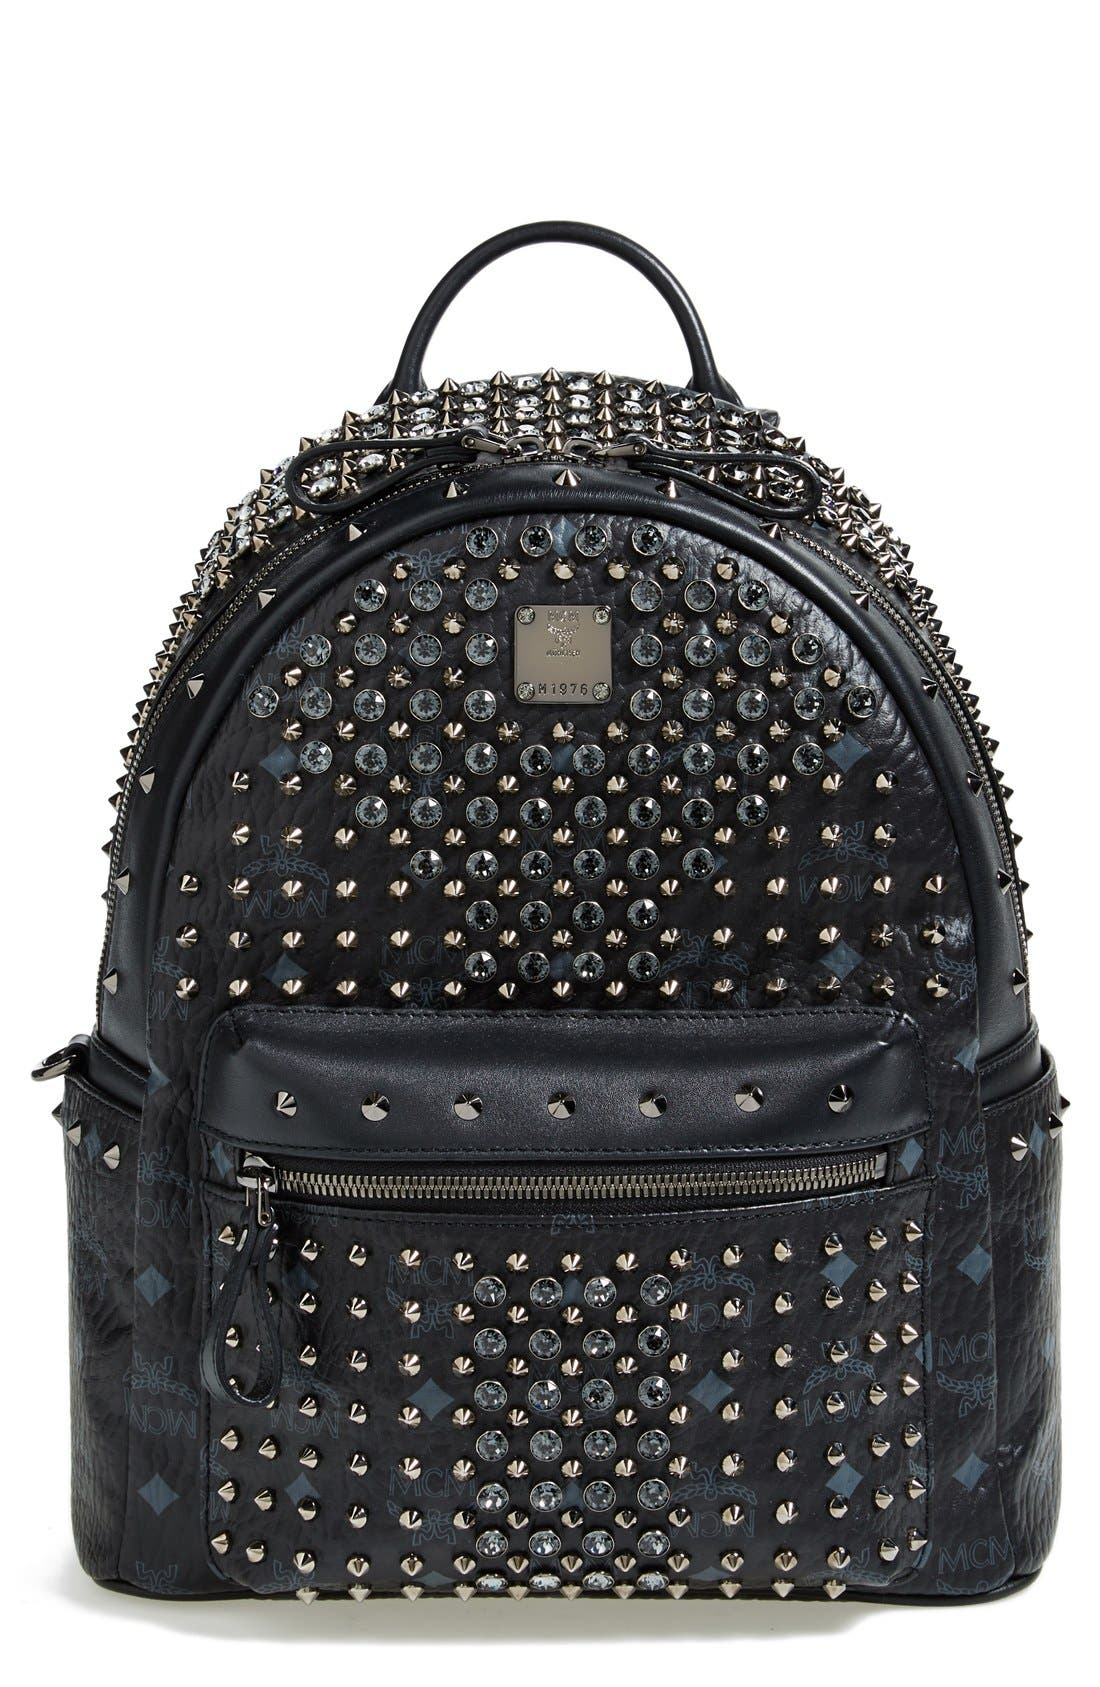 Main Image - MCM 'Studded - Small' Coated Canvas Backpack